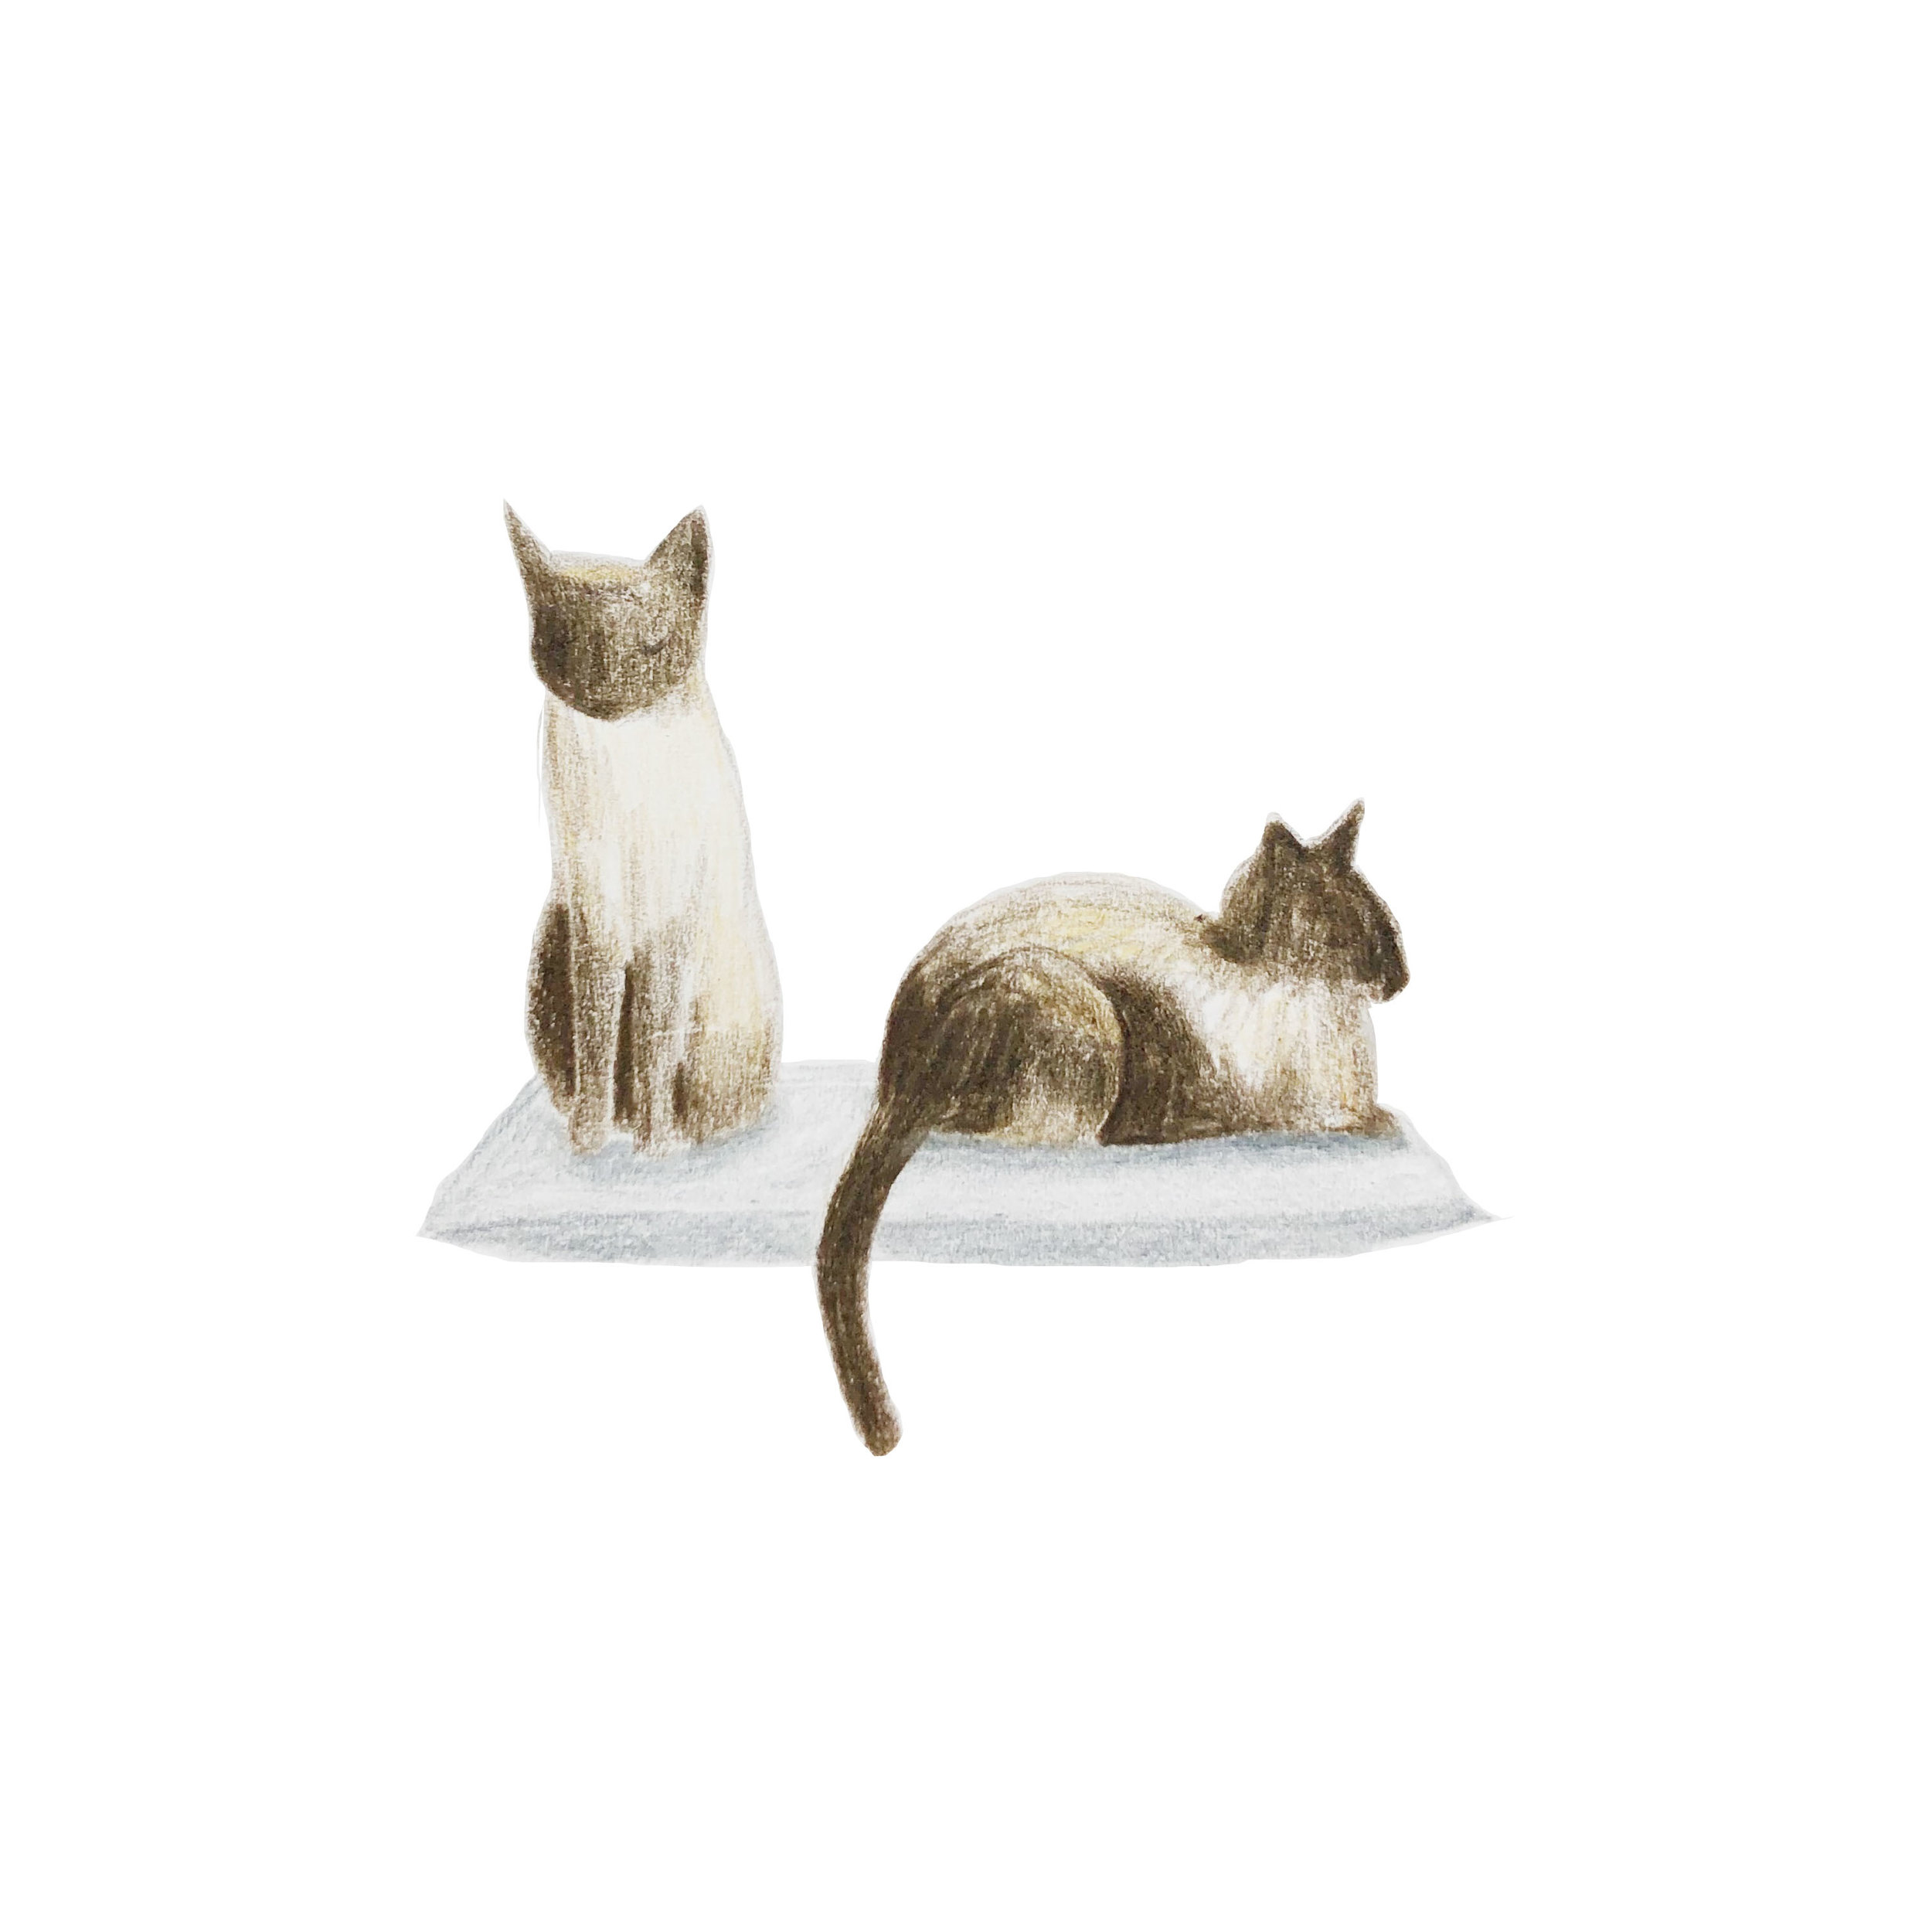 Siamese cats by Wandering In Whimsy